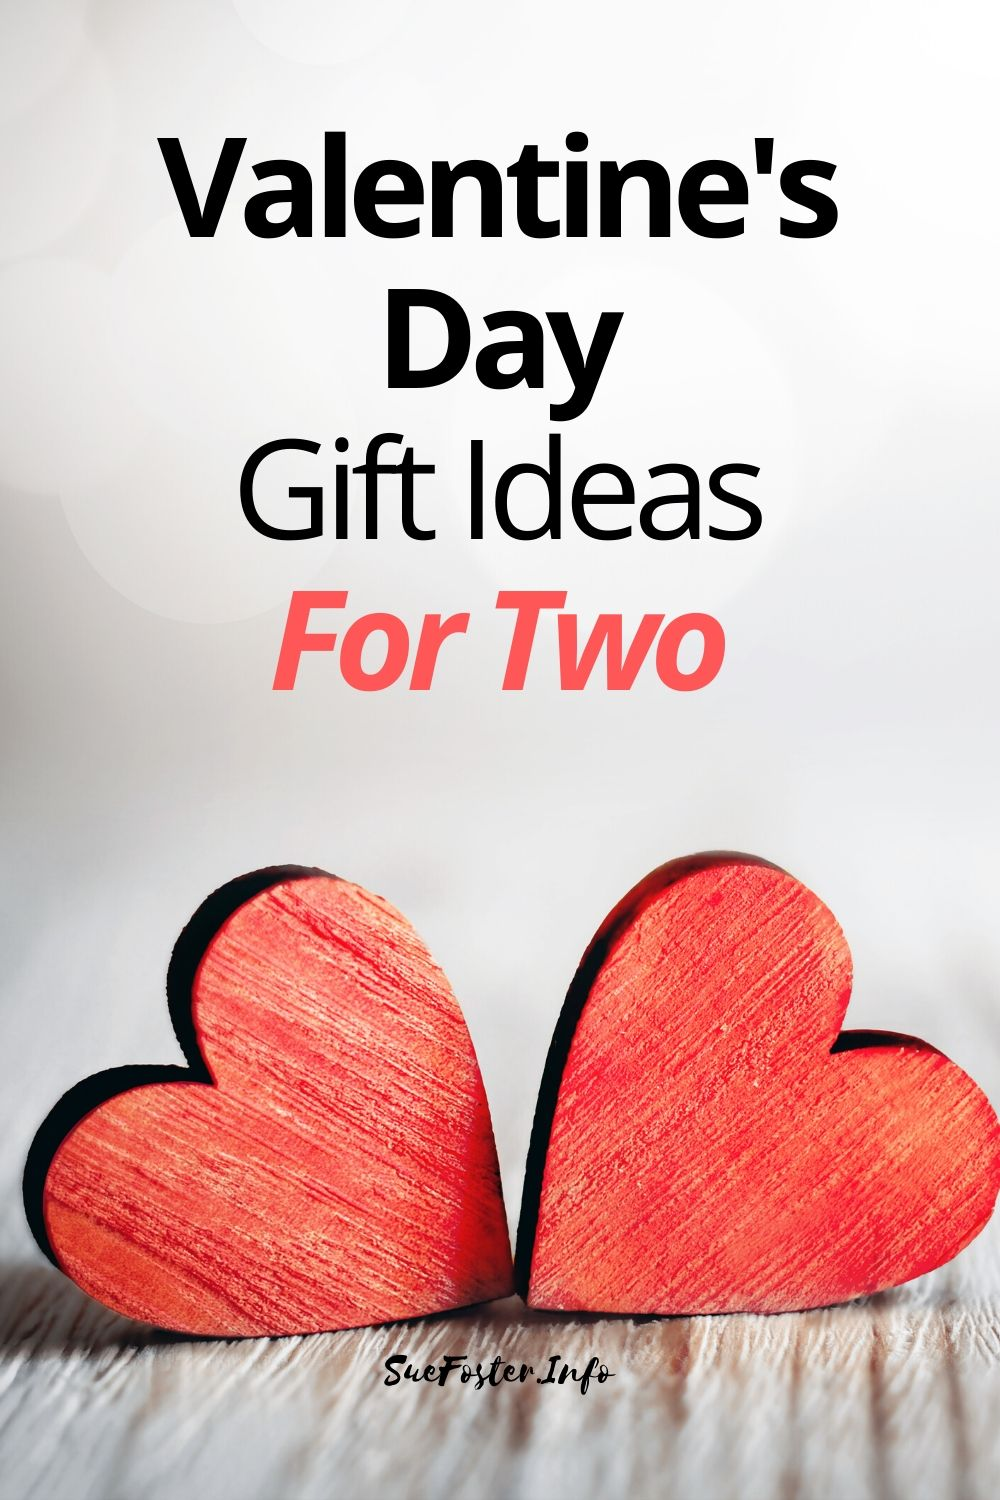 Valentine's Day gift ideas for two. Try a gift experience!